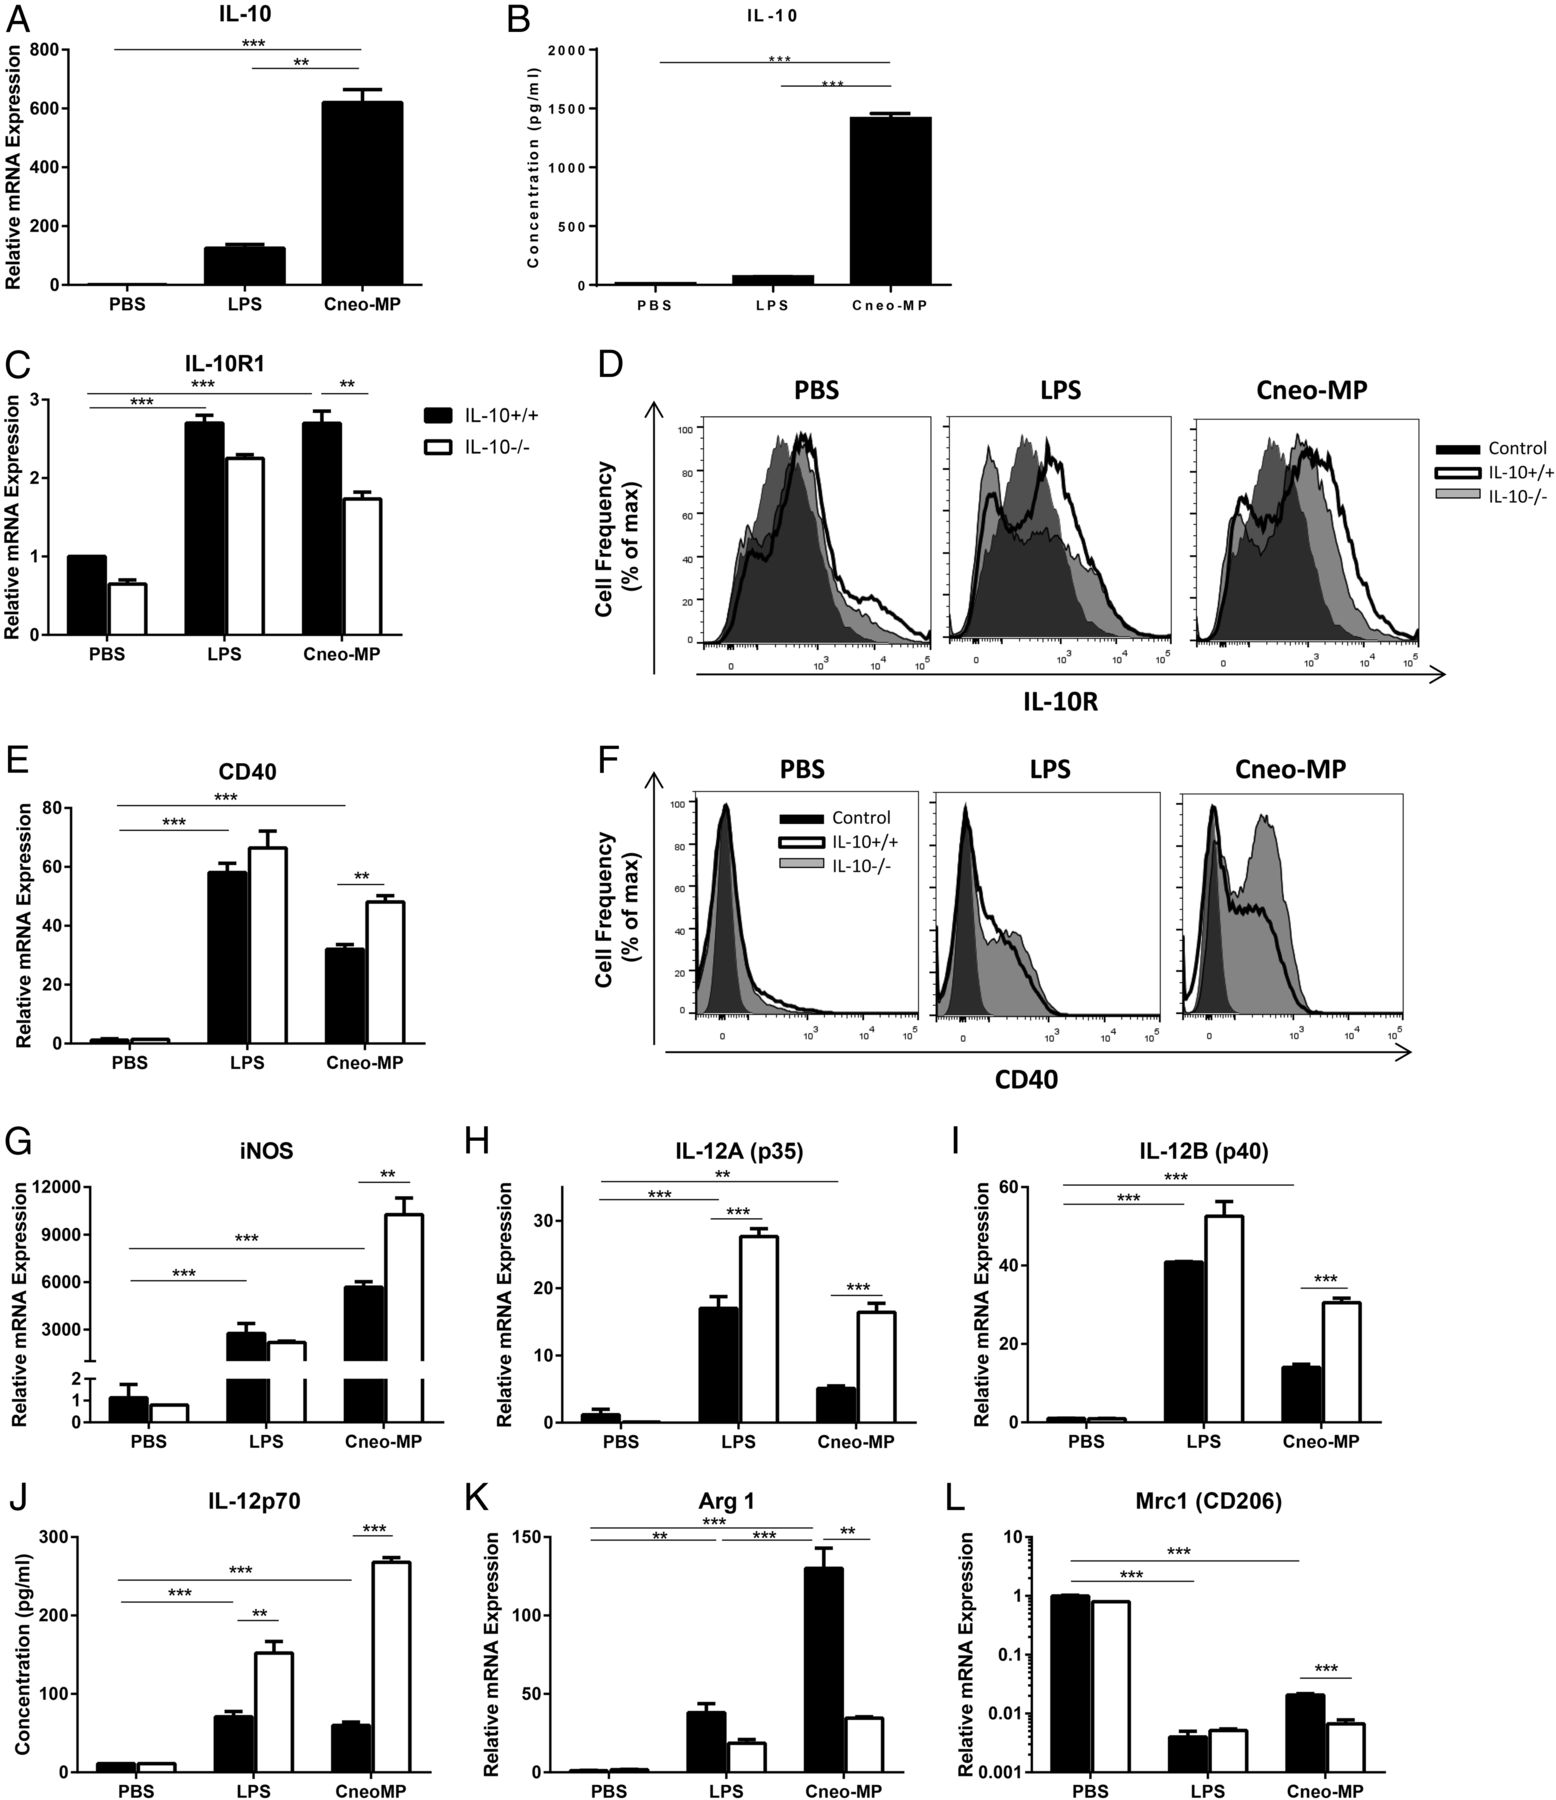 Autocrine IL-10 Signaling Promotes Dendritic Cell Type-2